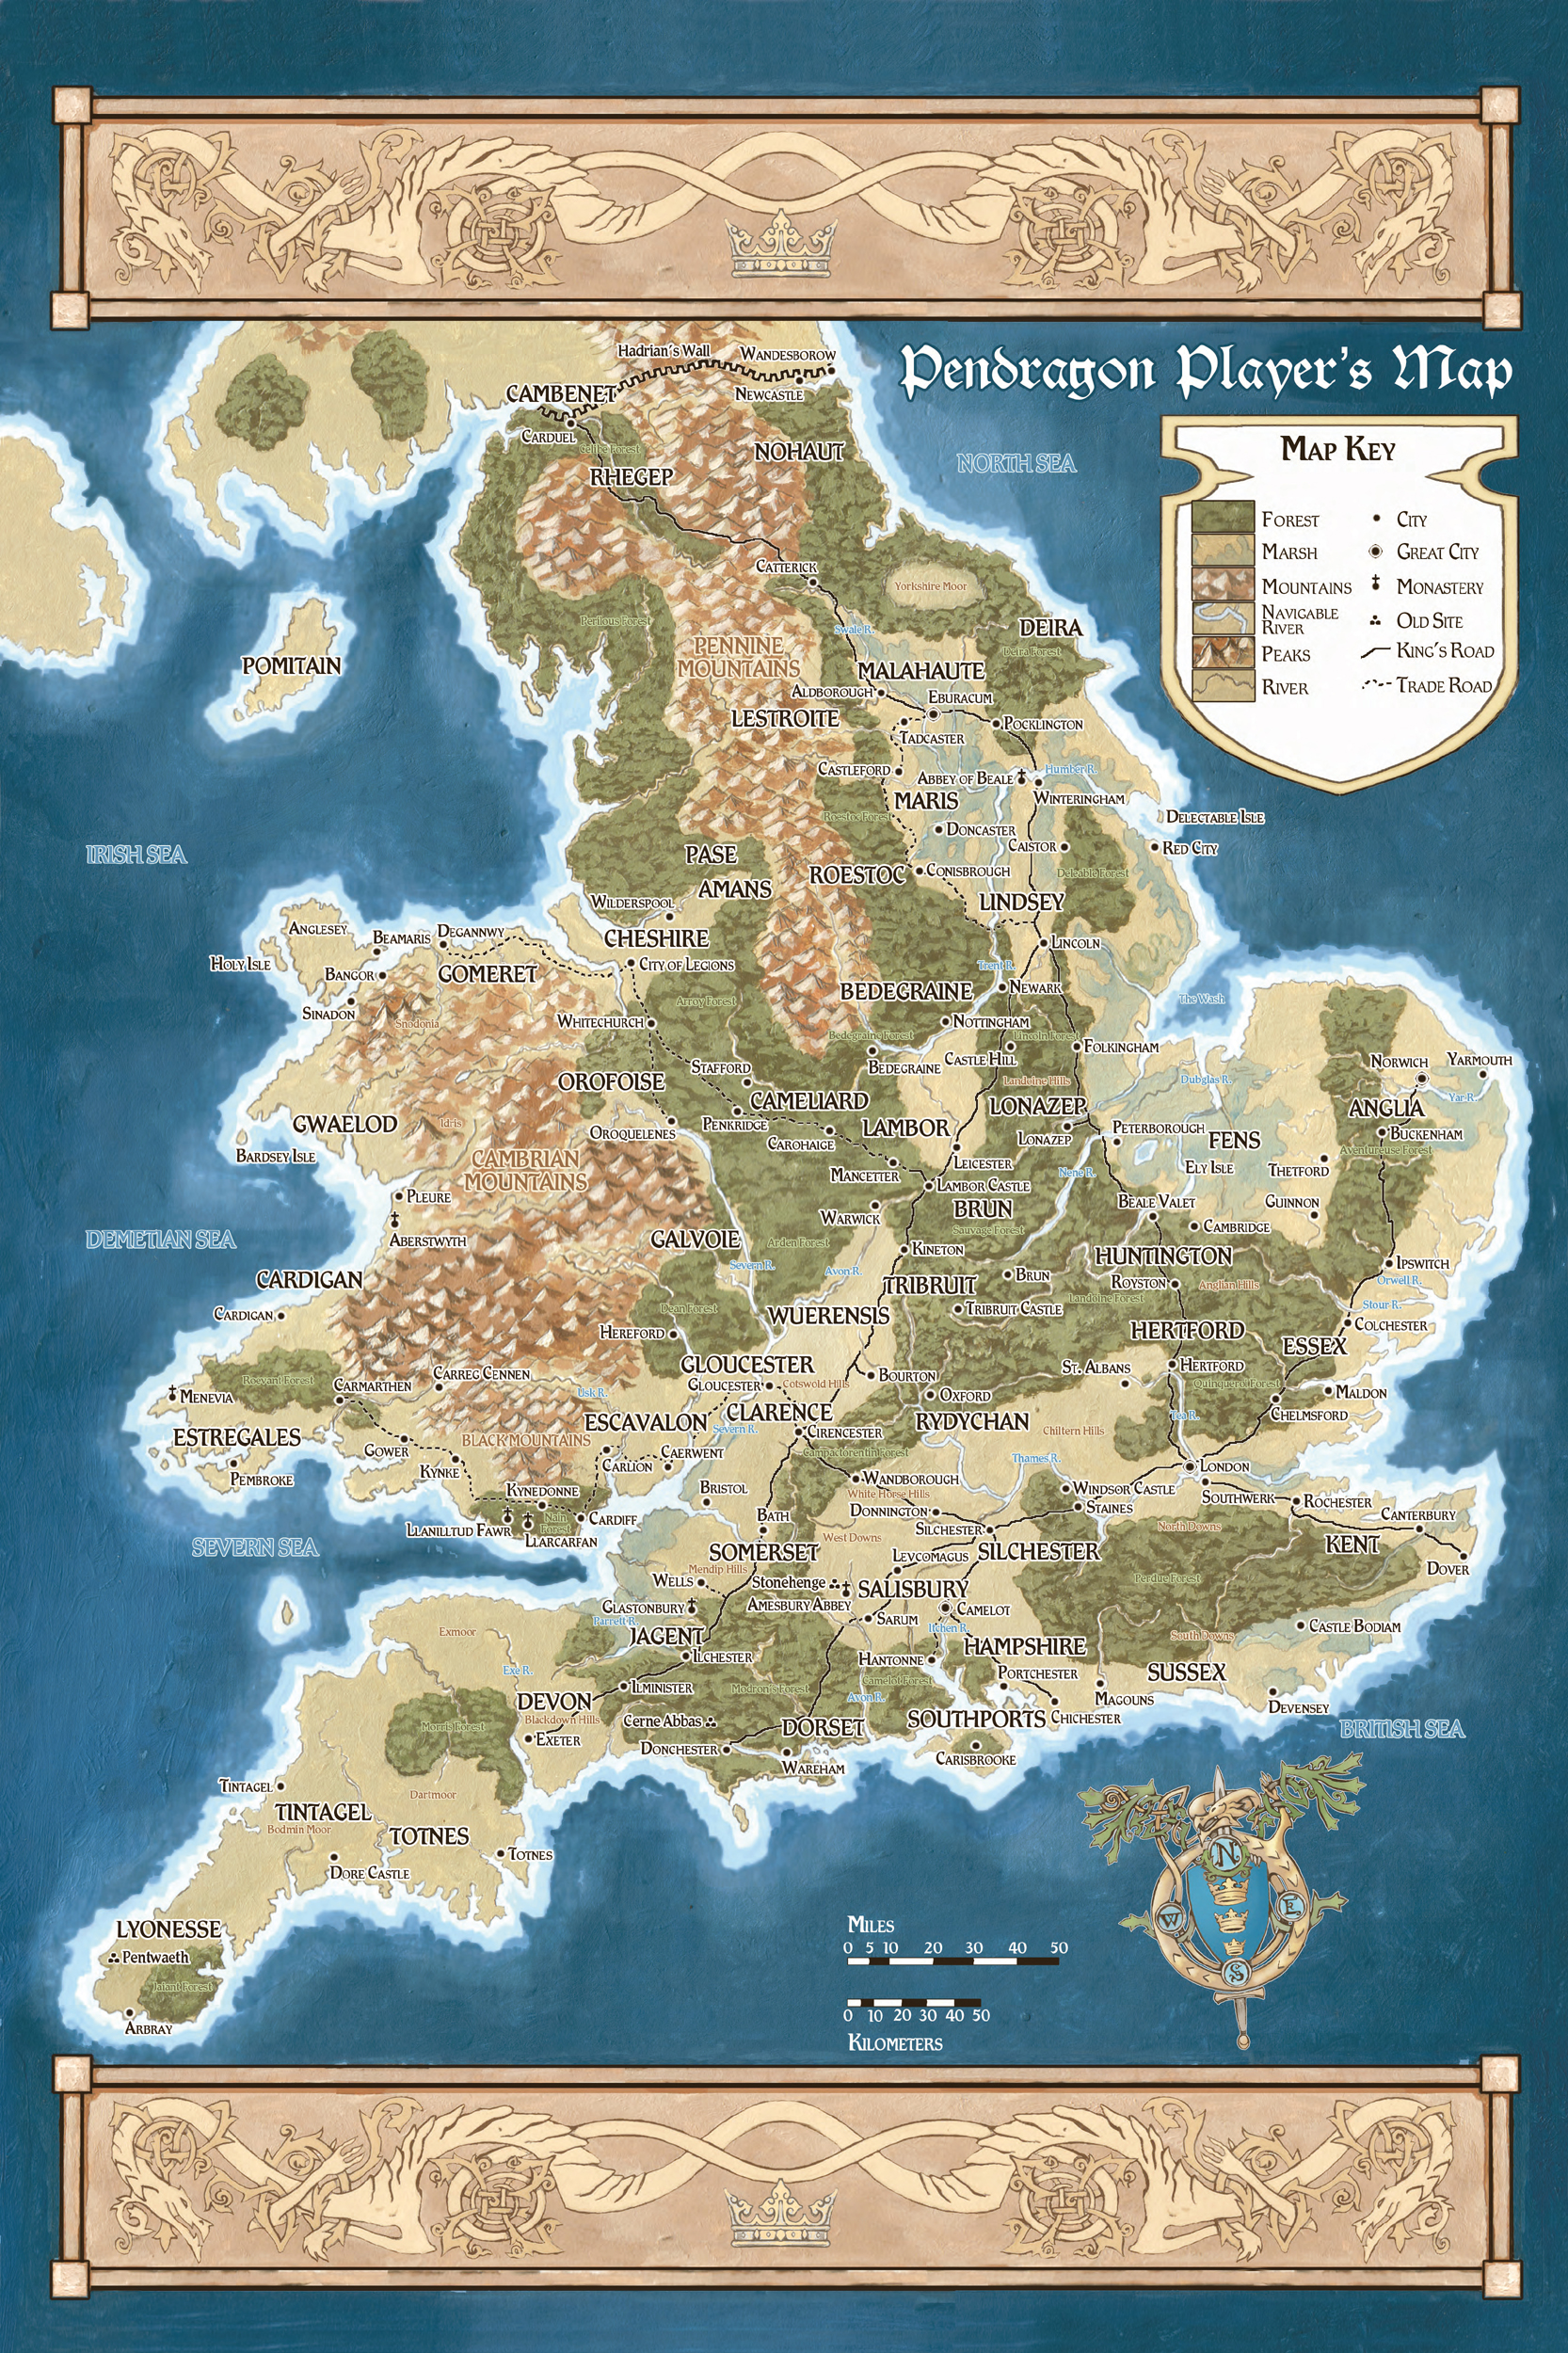 Map Of England King Arthur.King Arthur Pendragon Notes Maps And Links For Your Pendragon Game